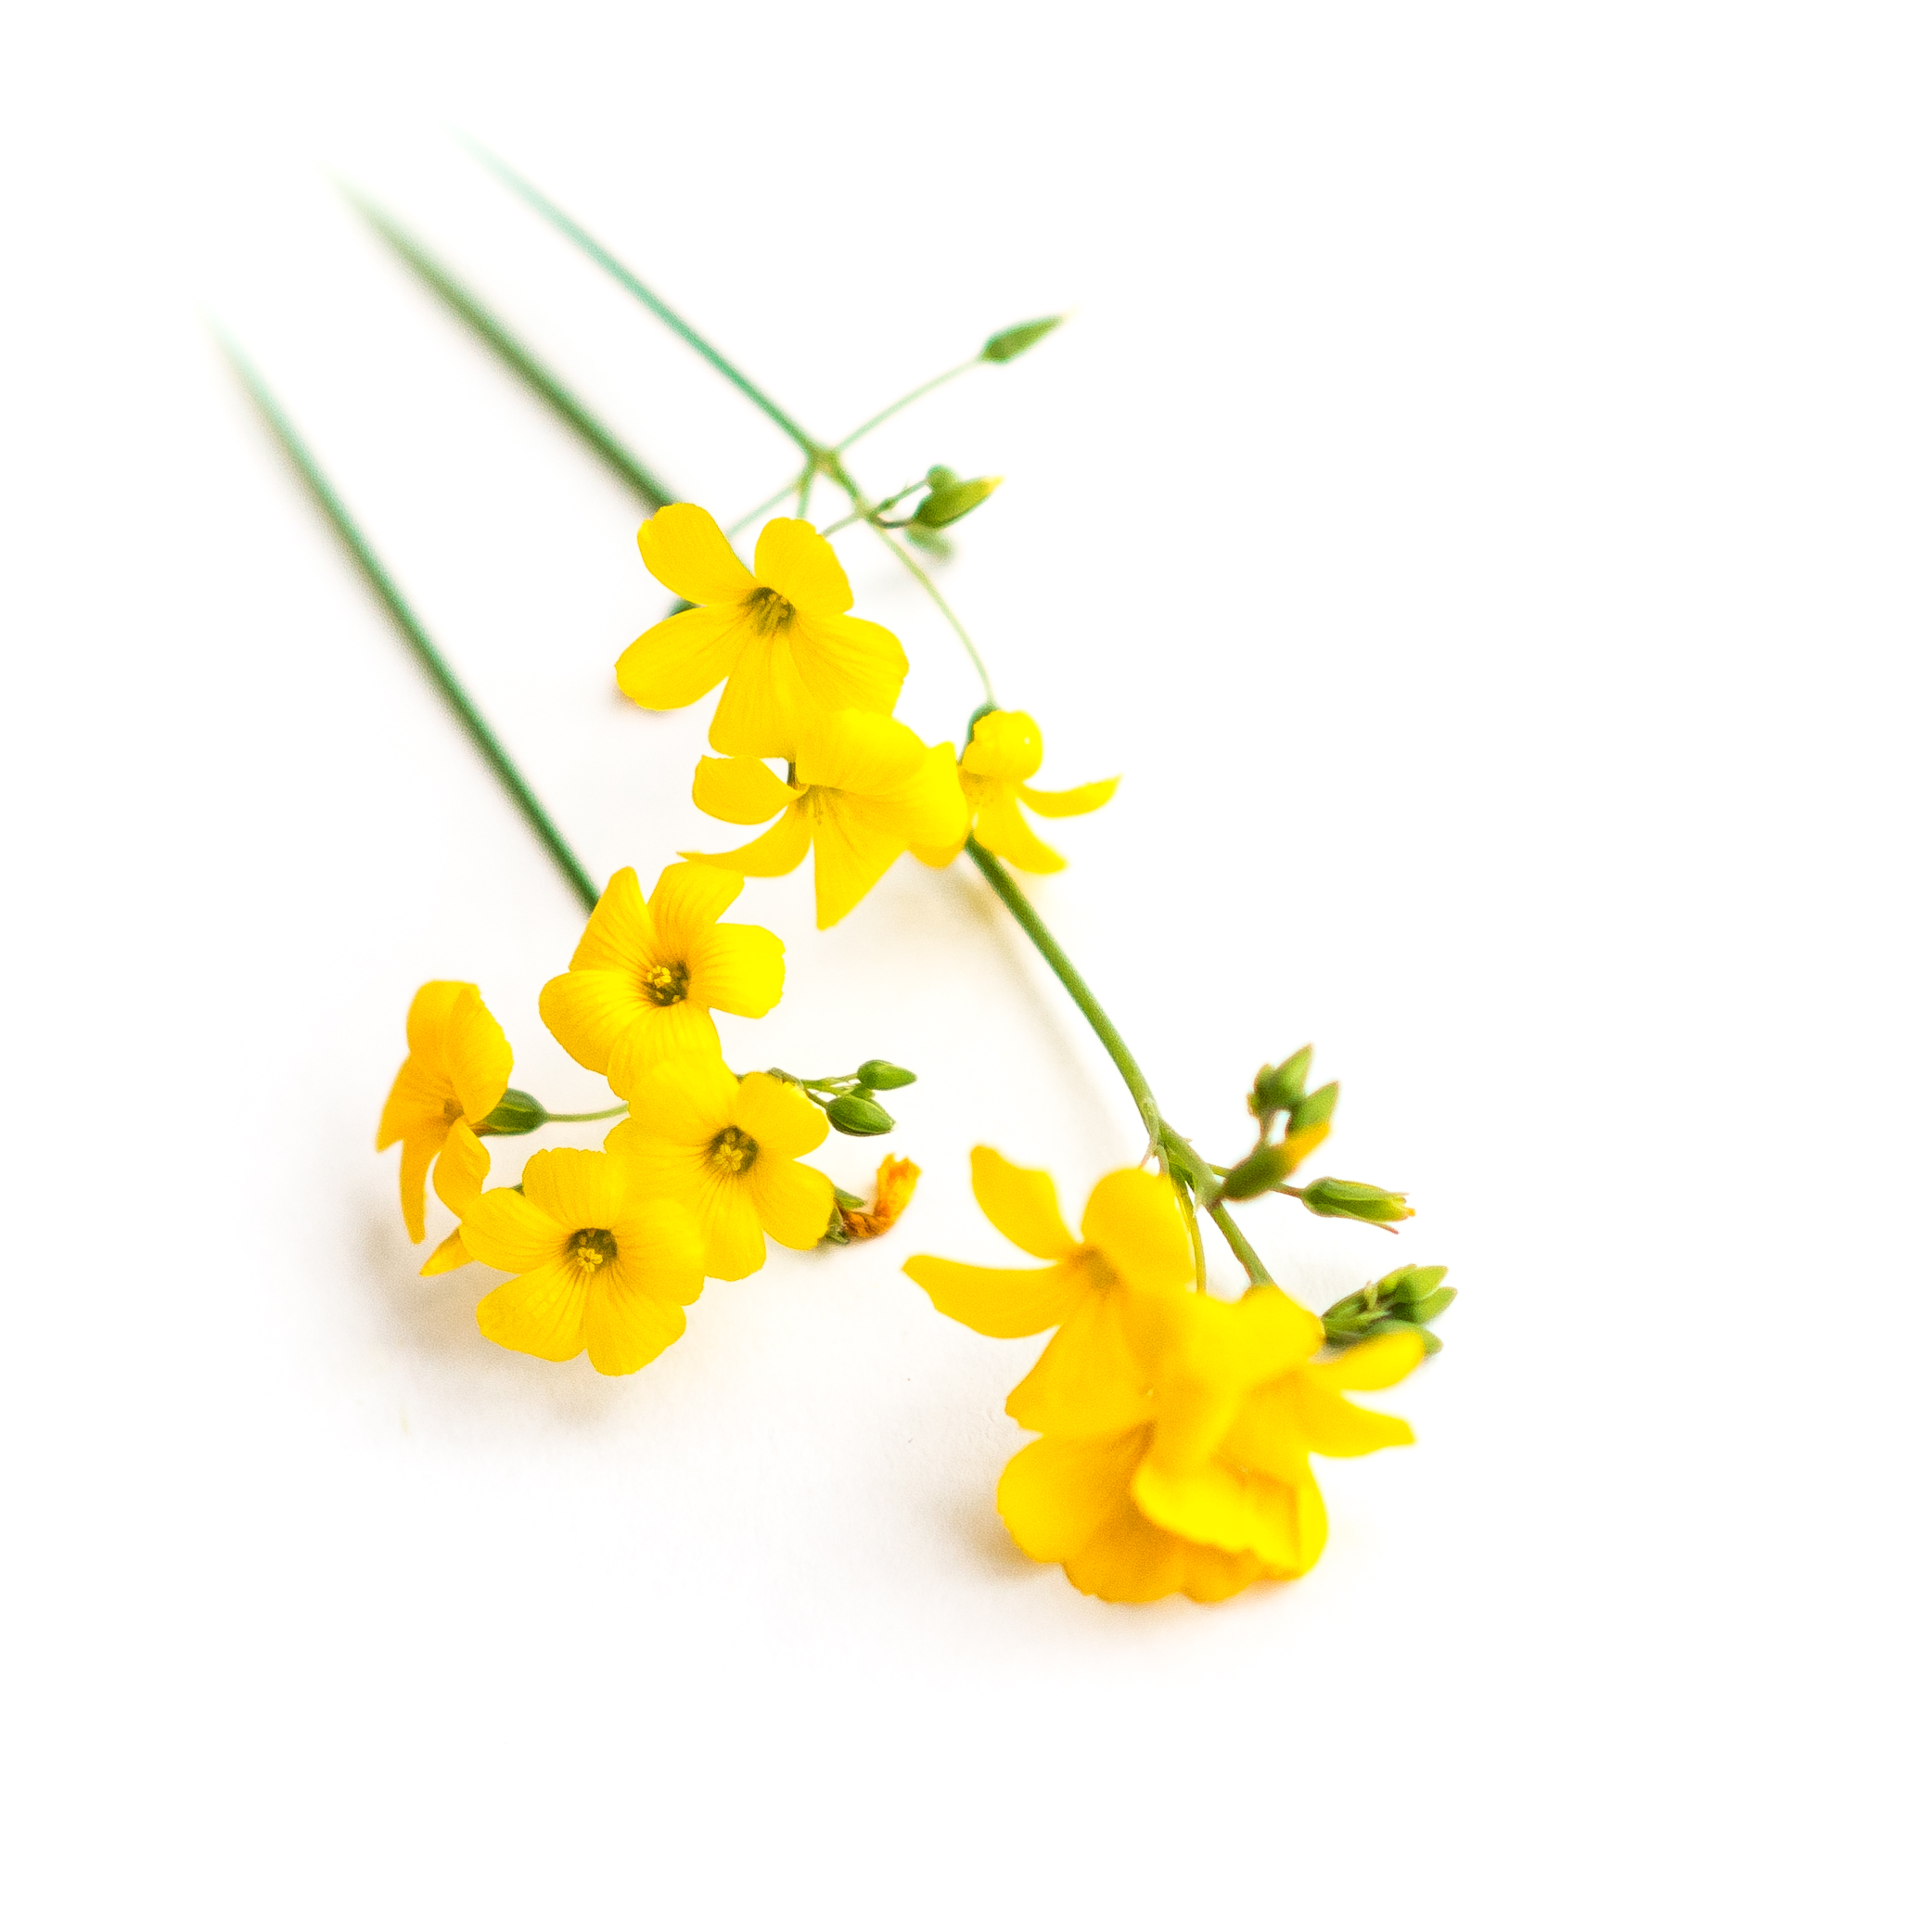 Sour tangy flavor in bright yellow flowers like buttercups